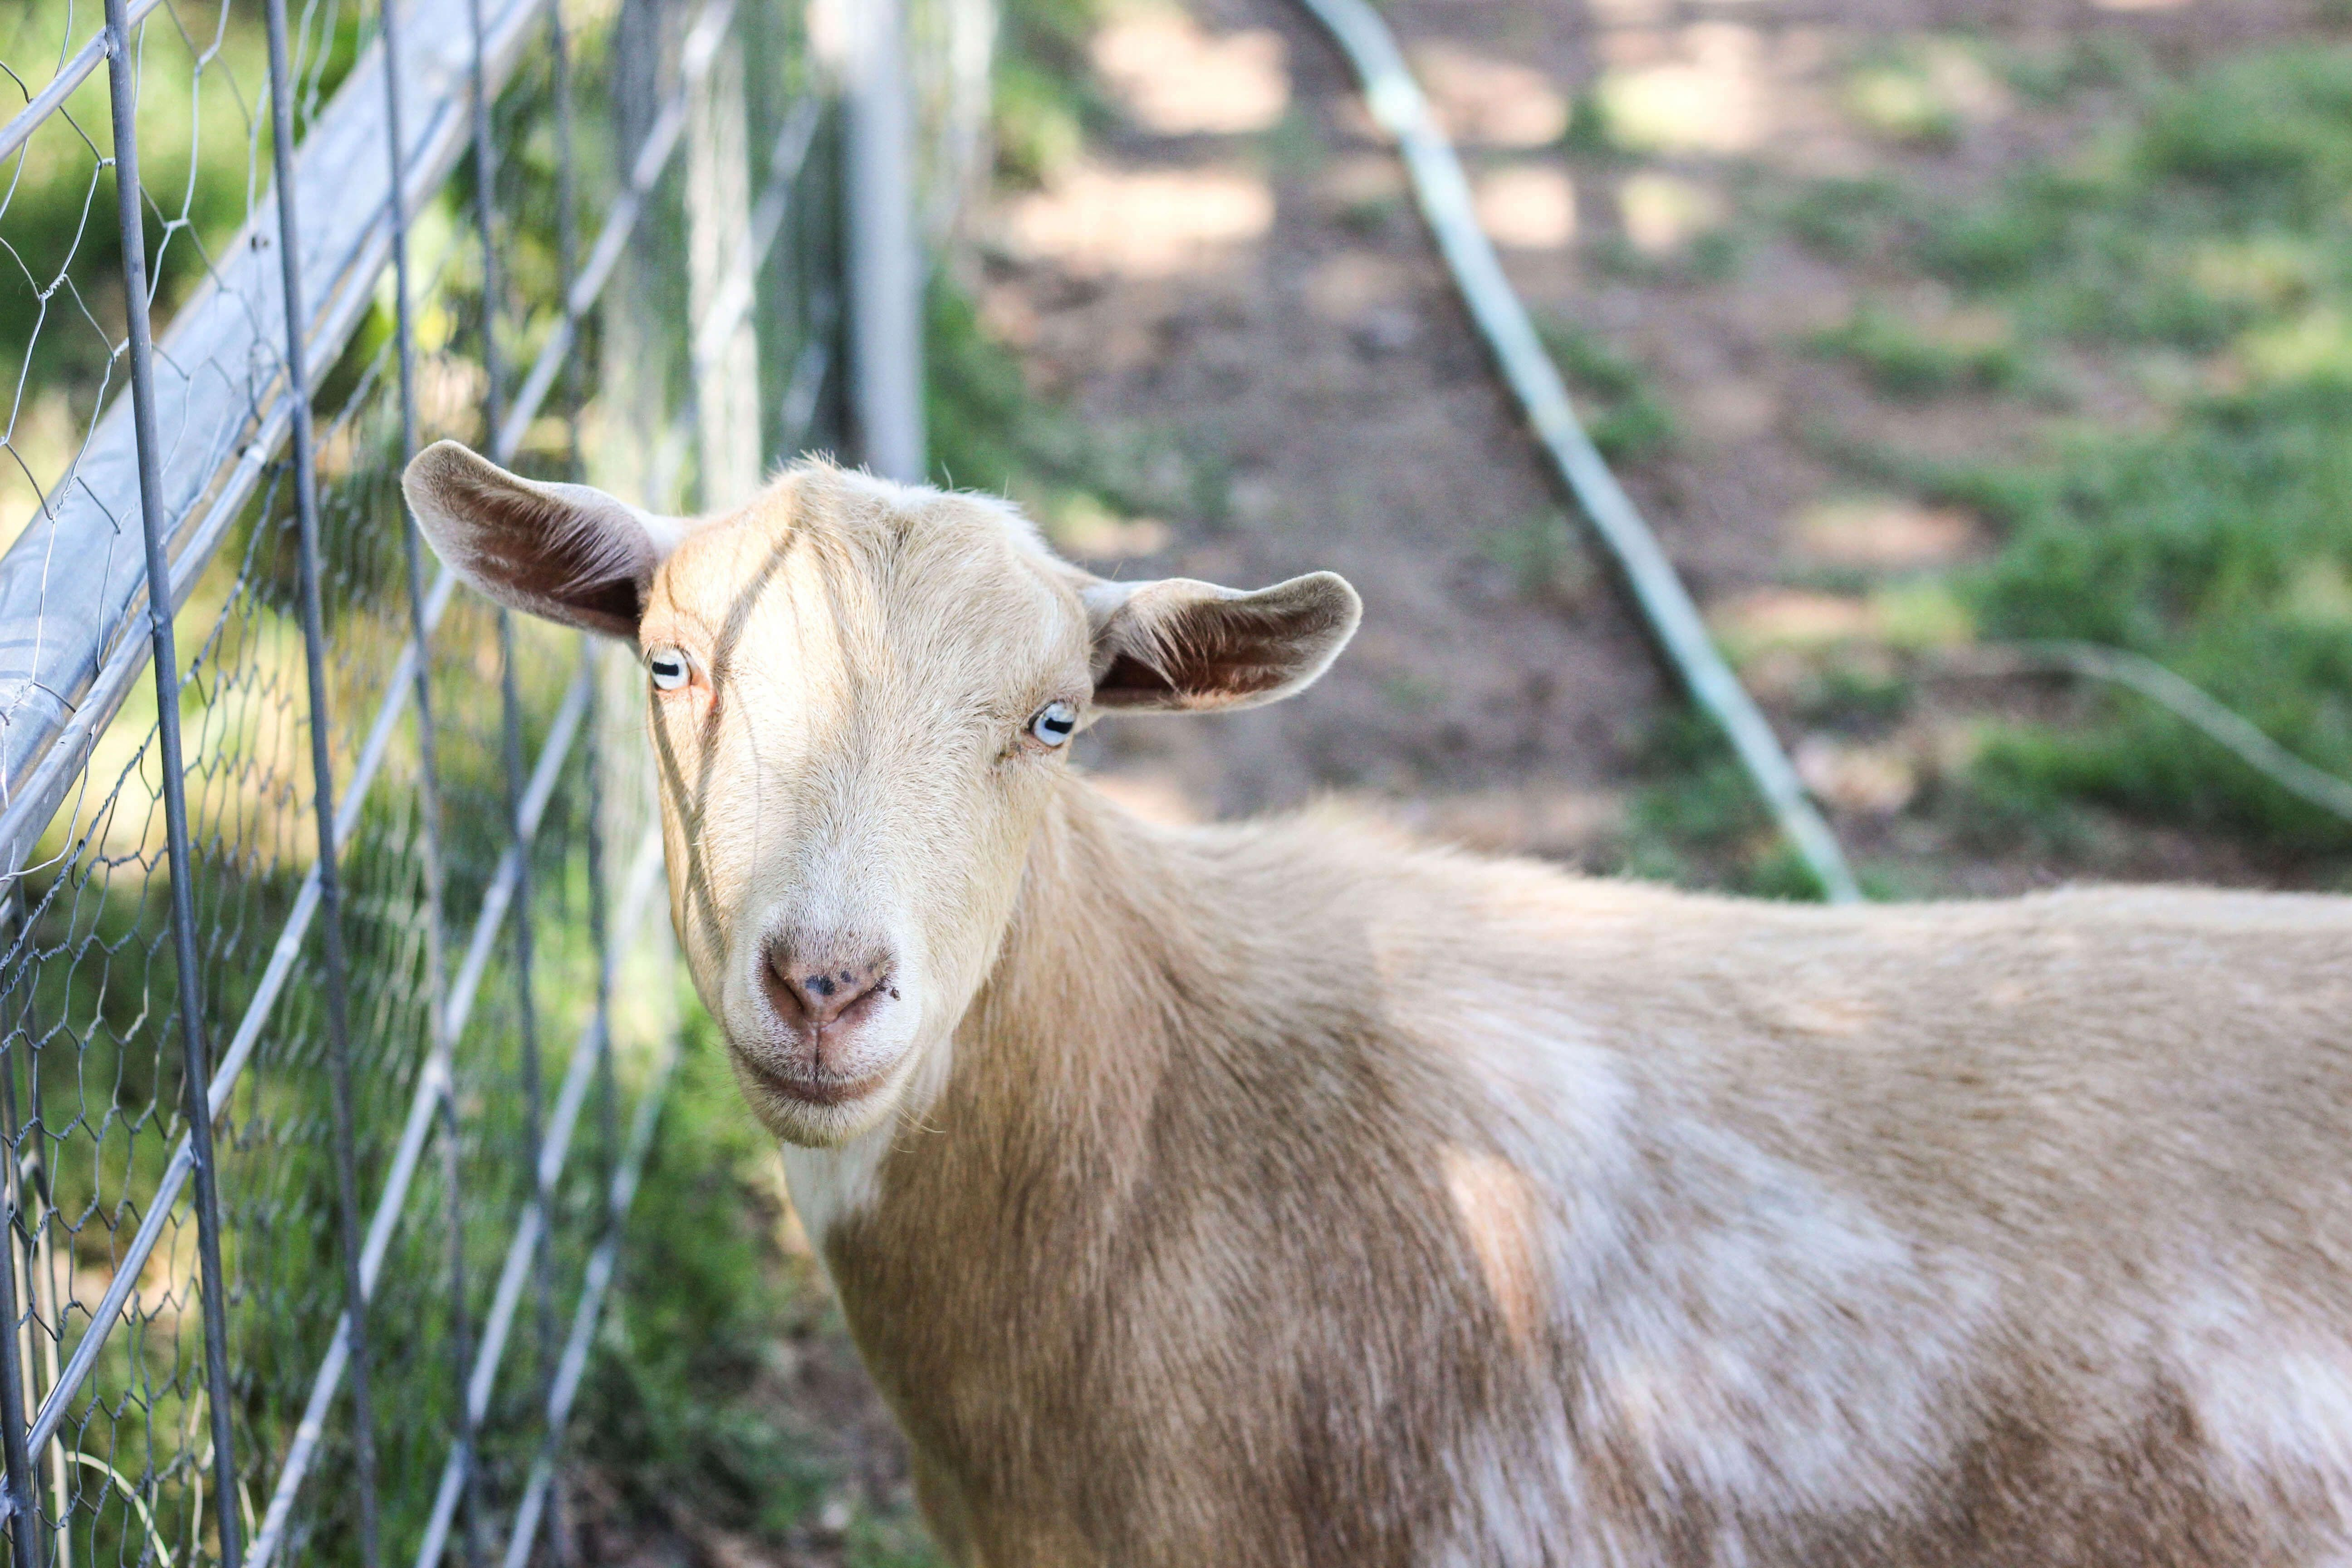 Kind goat raising beginners guide read review Goats